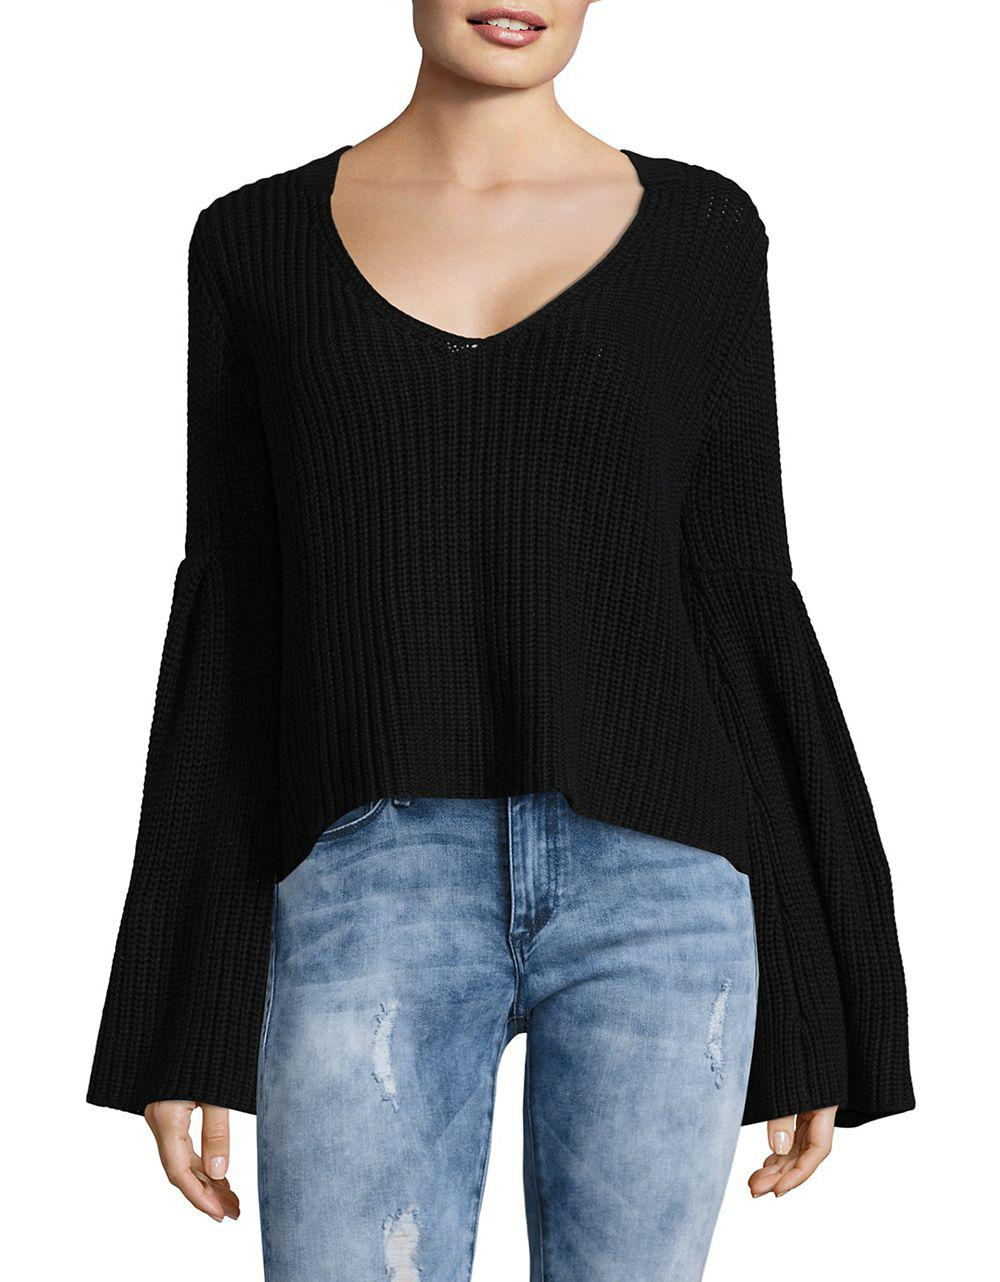 Free people Damsel Cotton Pullover Sweater in Black | Lyst